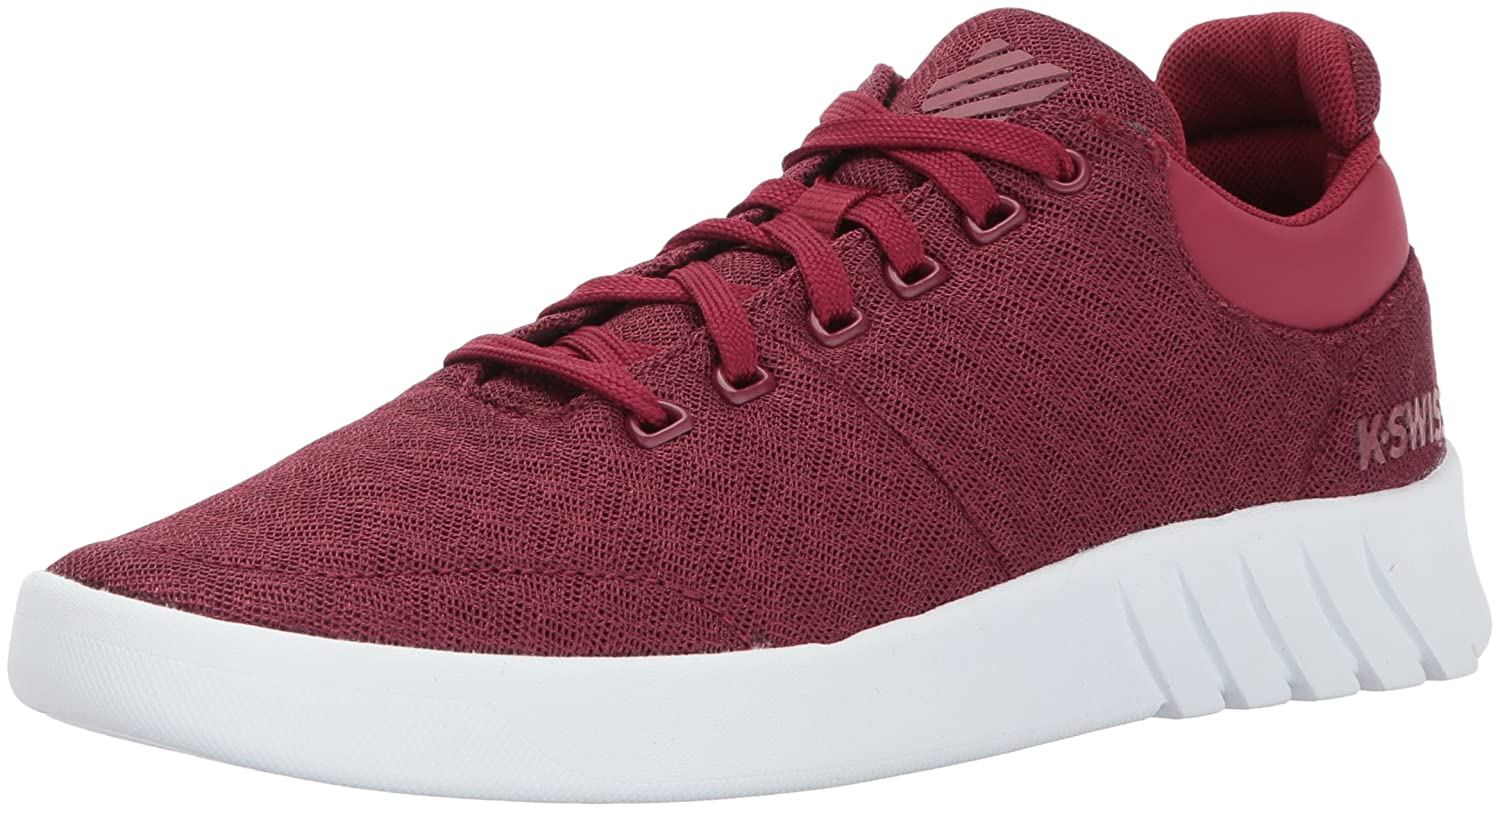 K-Swiss Women's Aero Trainer T Sneaker B01MYDZDYU 8.5 B(M) US|Tibetan Red/White